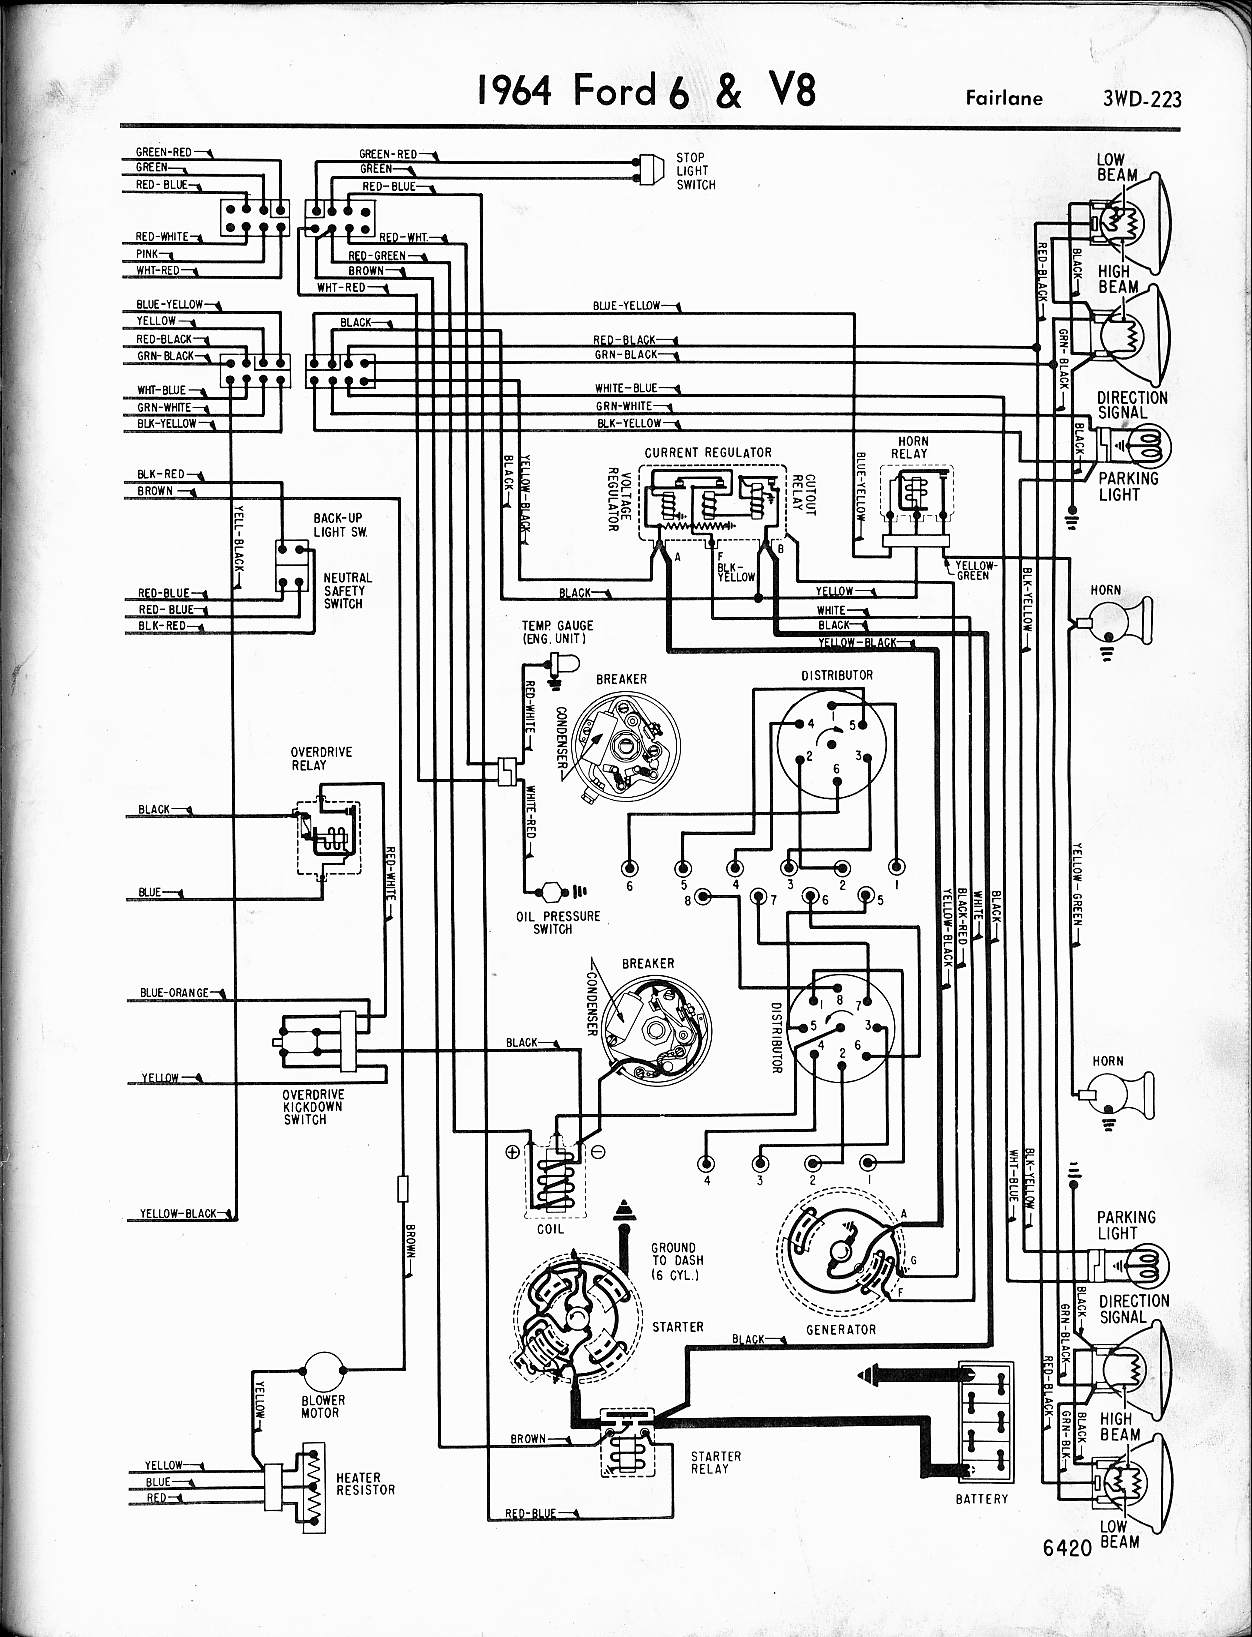 3 moreover 1974 Plymouth Barracuda Wiring Diagram furthermore 1953 Ford Ignition Wiring Diagram Pdf furthermore 70 Chevelle Fuel Gauge Wiring Diagram moreover Wiring Diagram For 1965 Chevy Pickup Free Download. on 1964 gto wiring harness